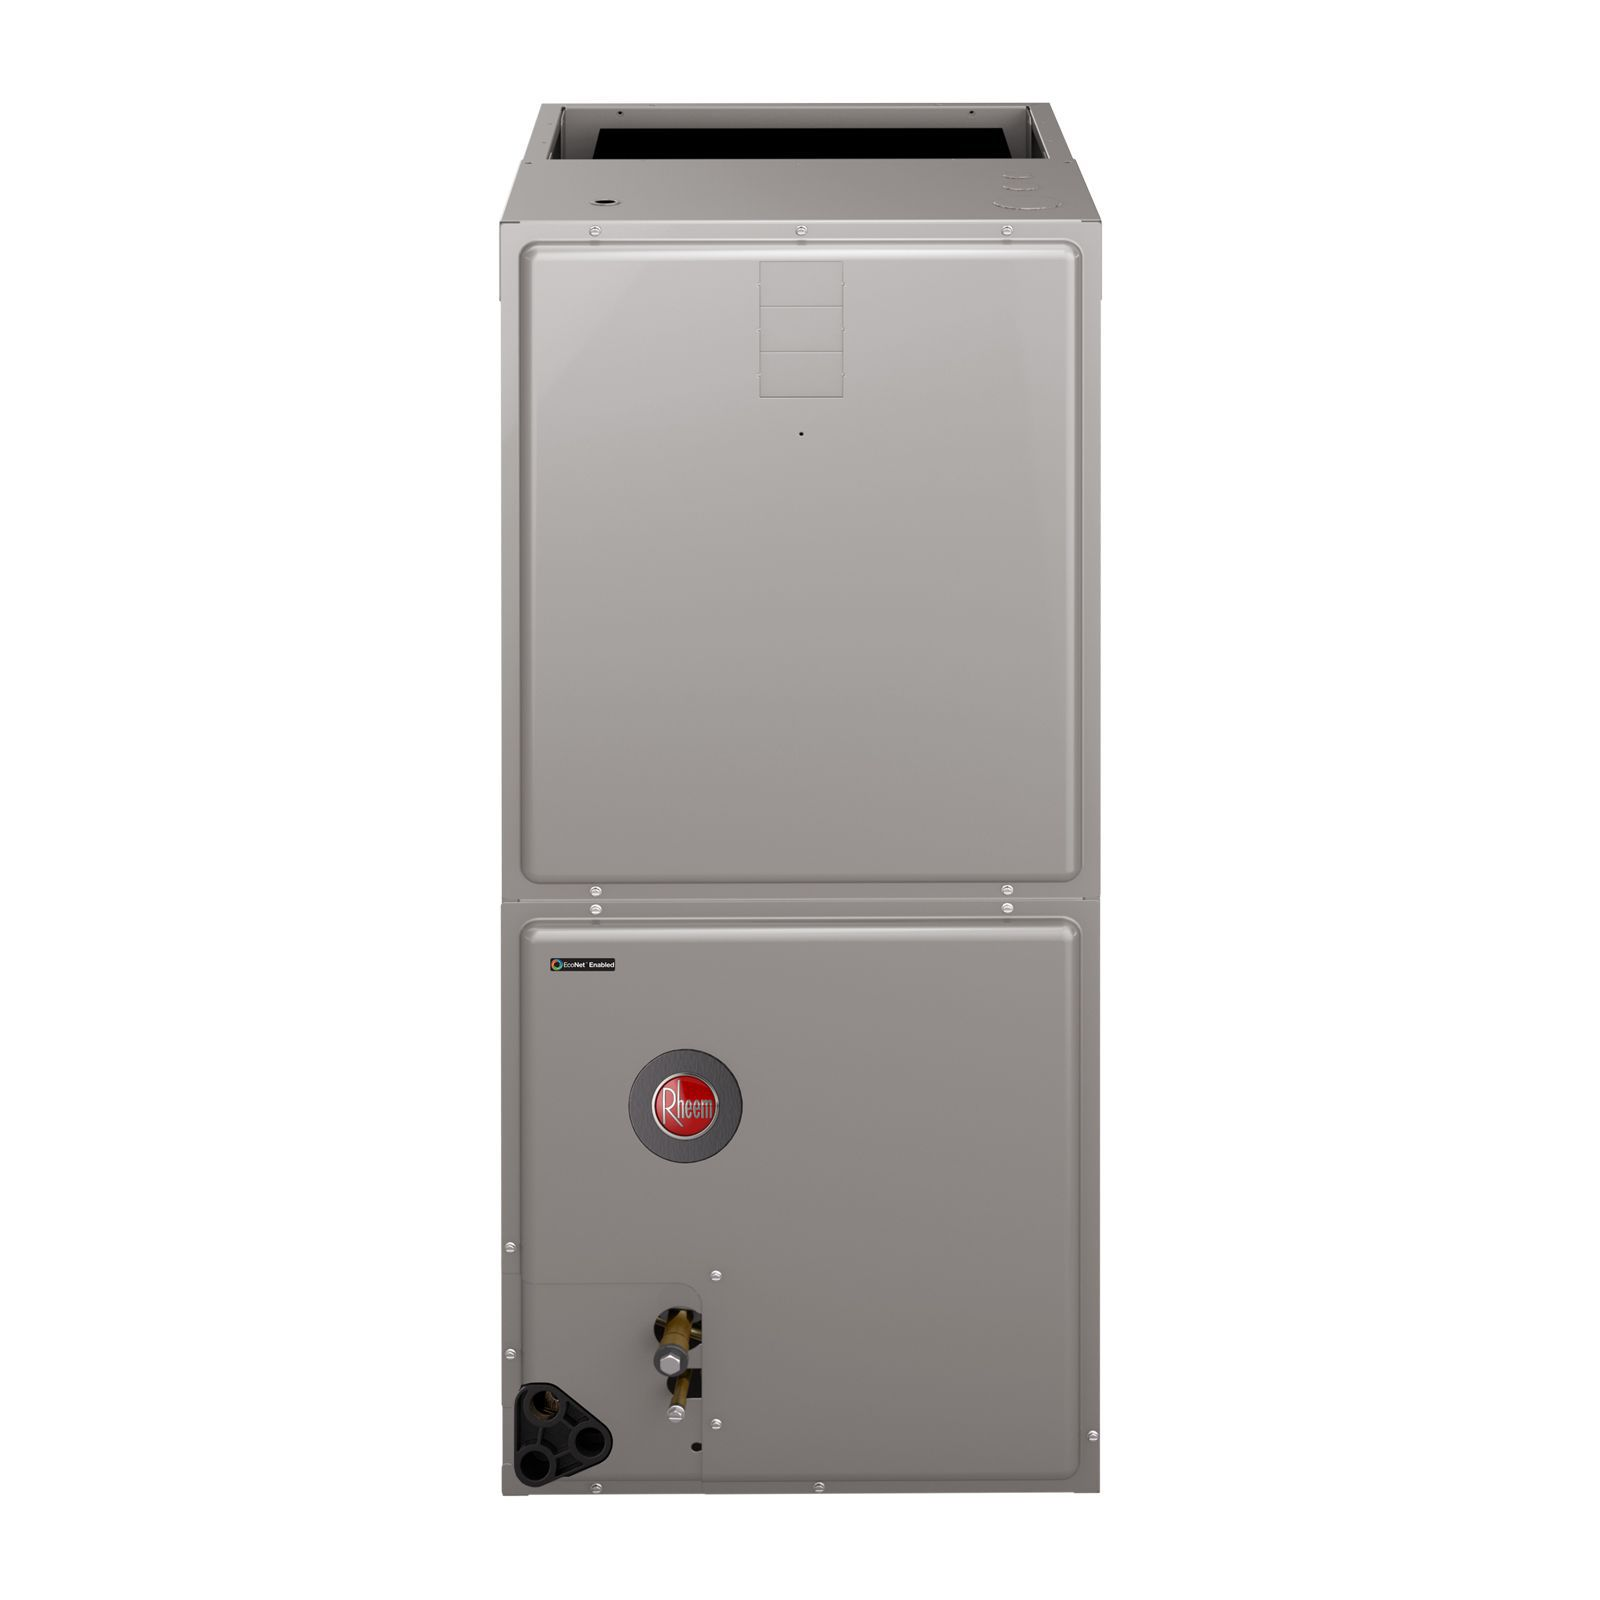 "Rheem RHMV2421HEACJA - 2 Ton, Modulating, EcoNet Enabled, Air Handler, ECM Motor, EEV Valve, 21"" Wide, 208/240V, 1Ph, 60Hz"